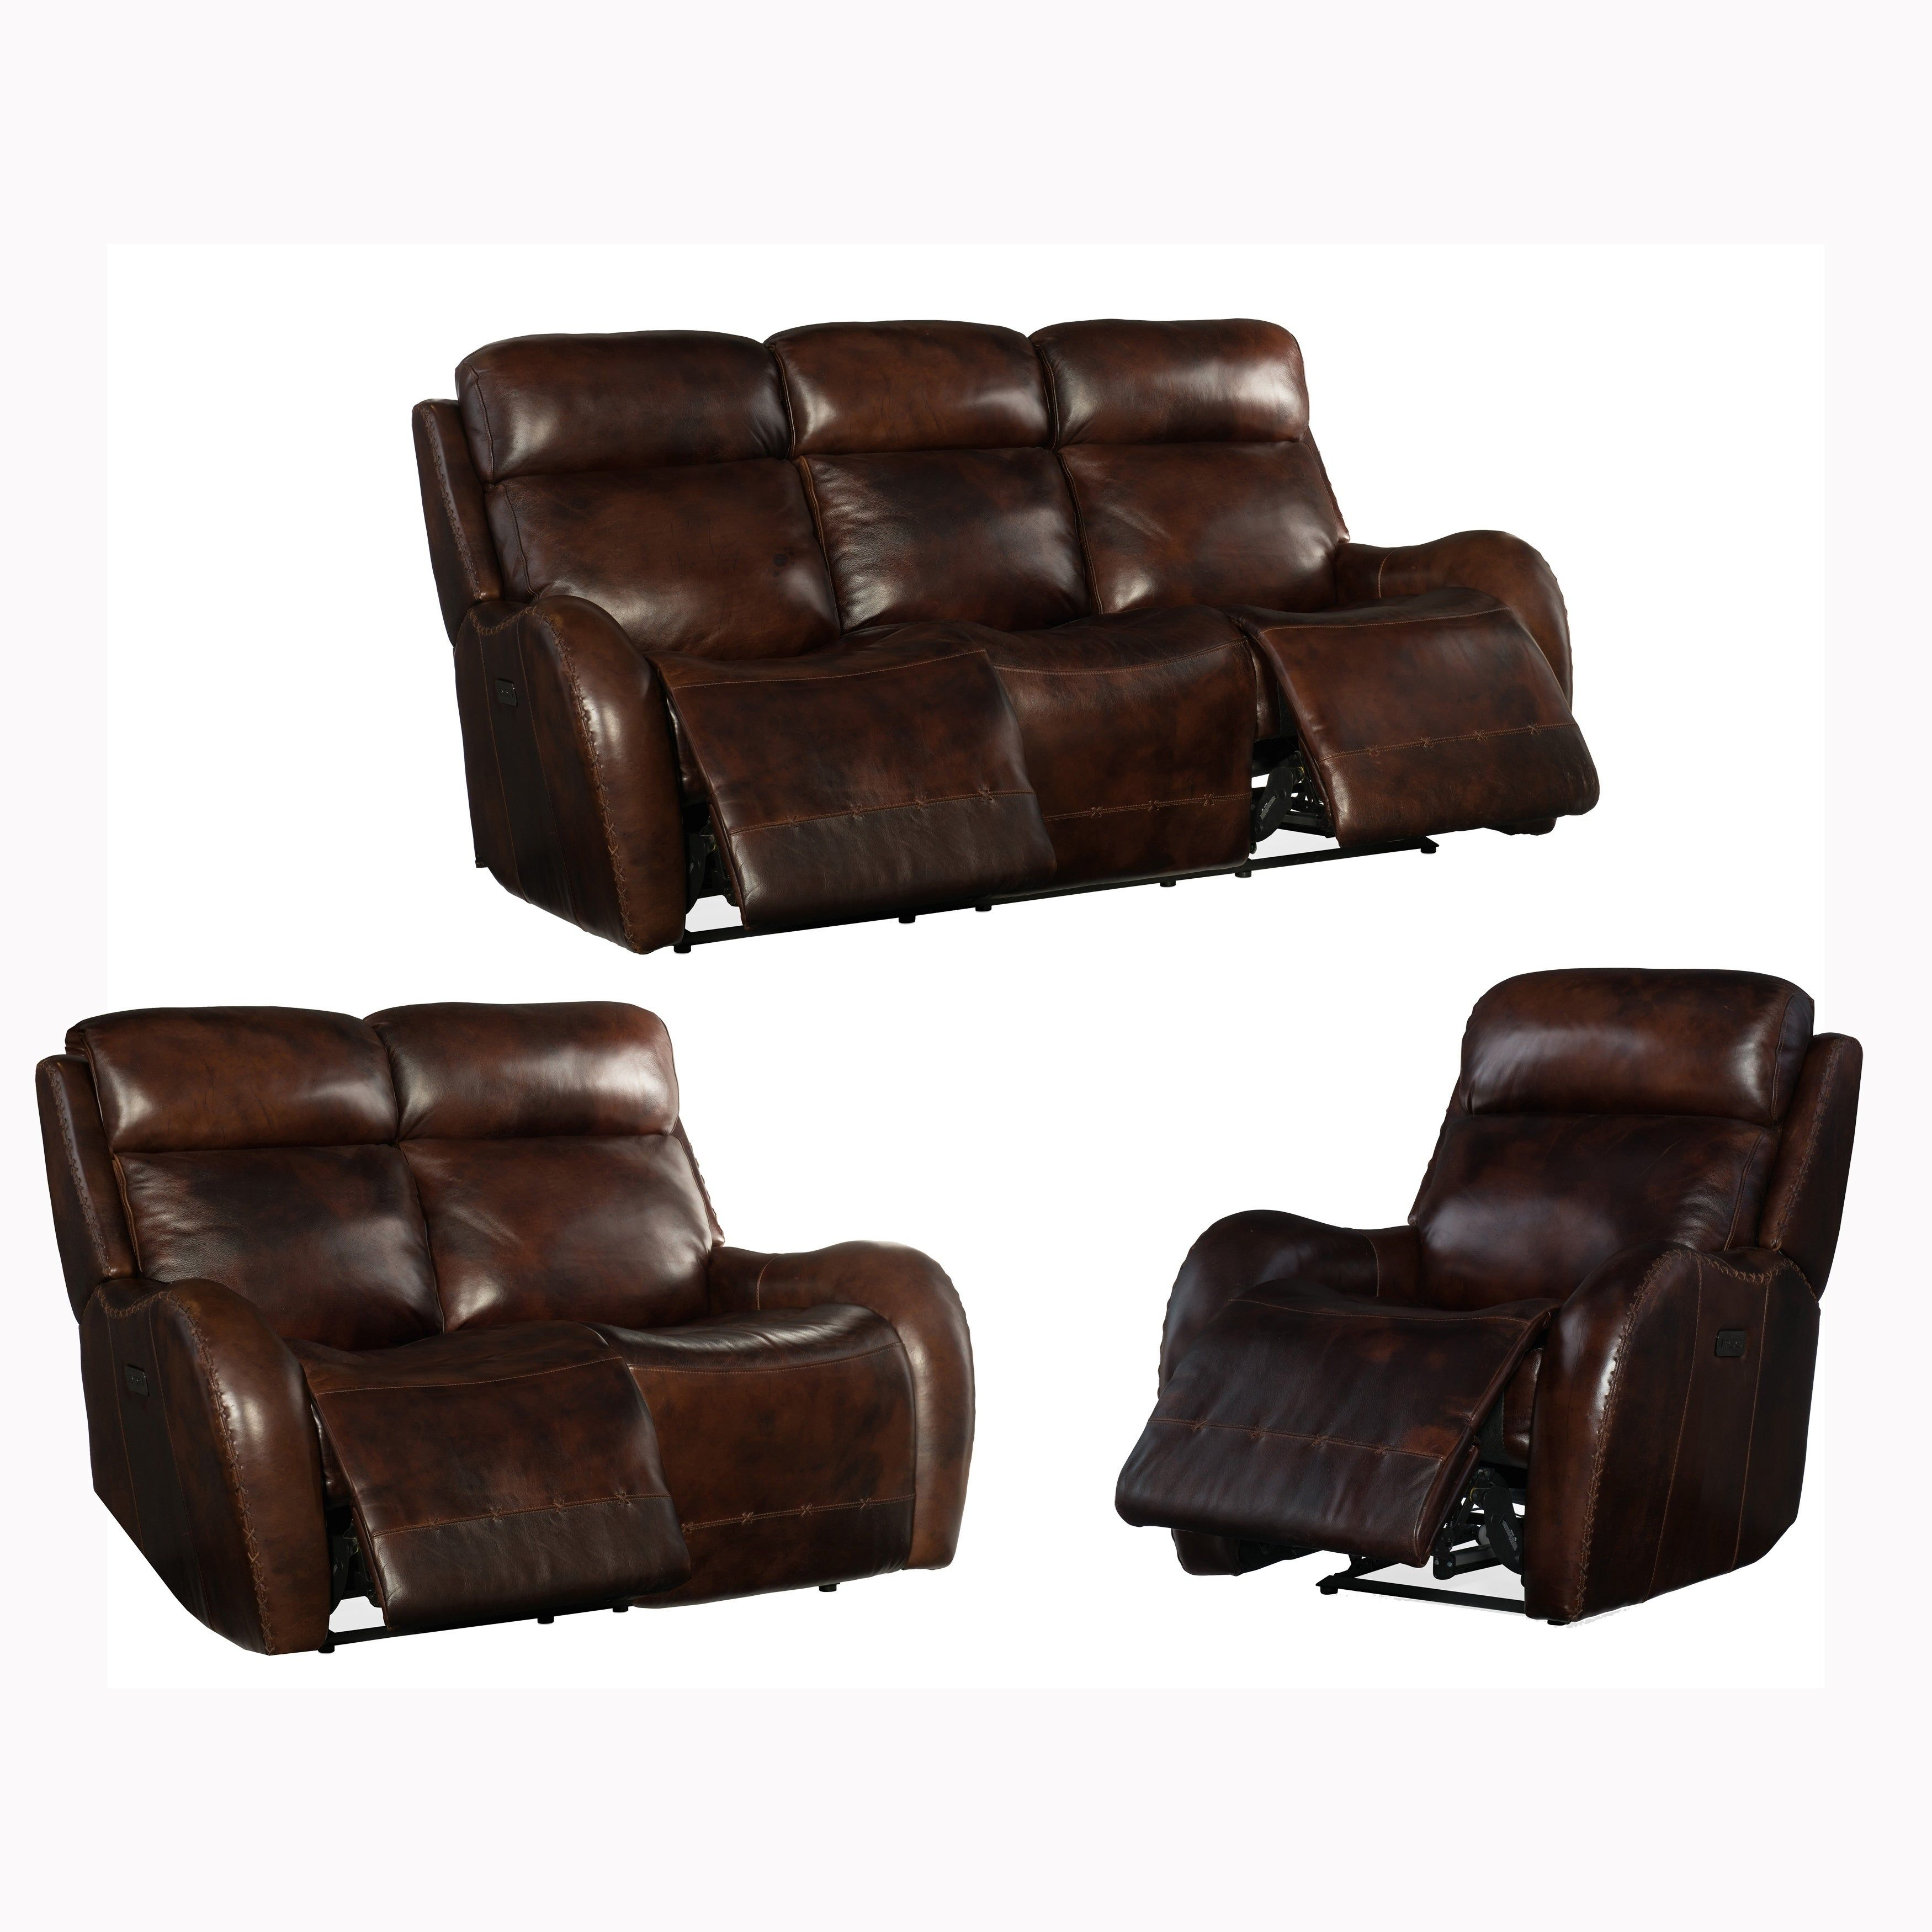 Pleasant Soren Brown Top Grain Leather Power Reclining Sofa Loveseat Bralicious Painted Fabric Chair Ideas Braliciousco